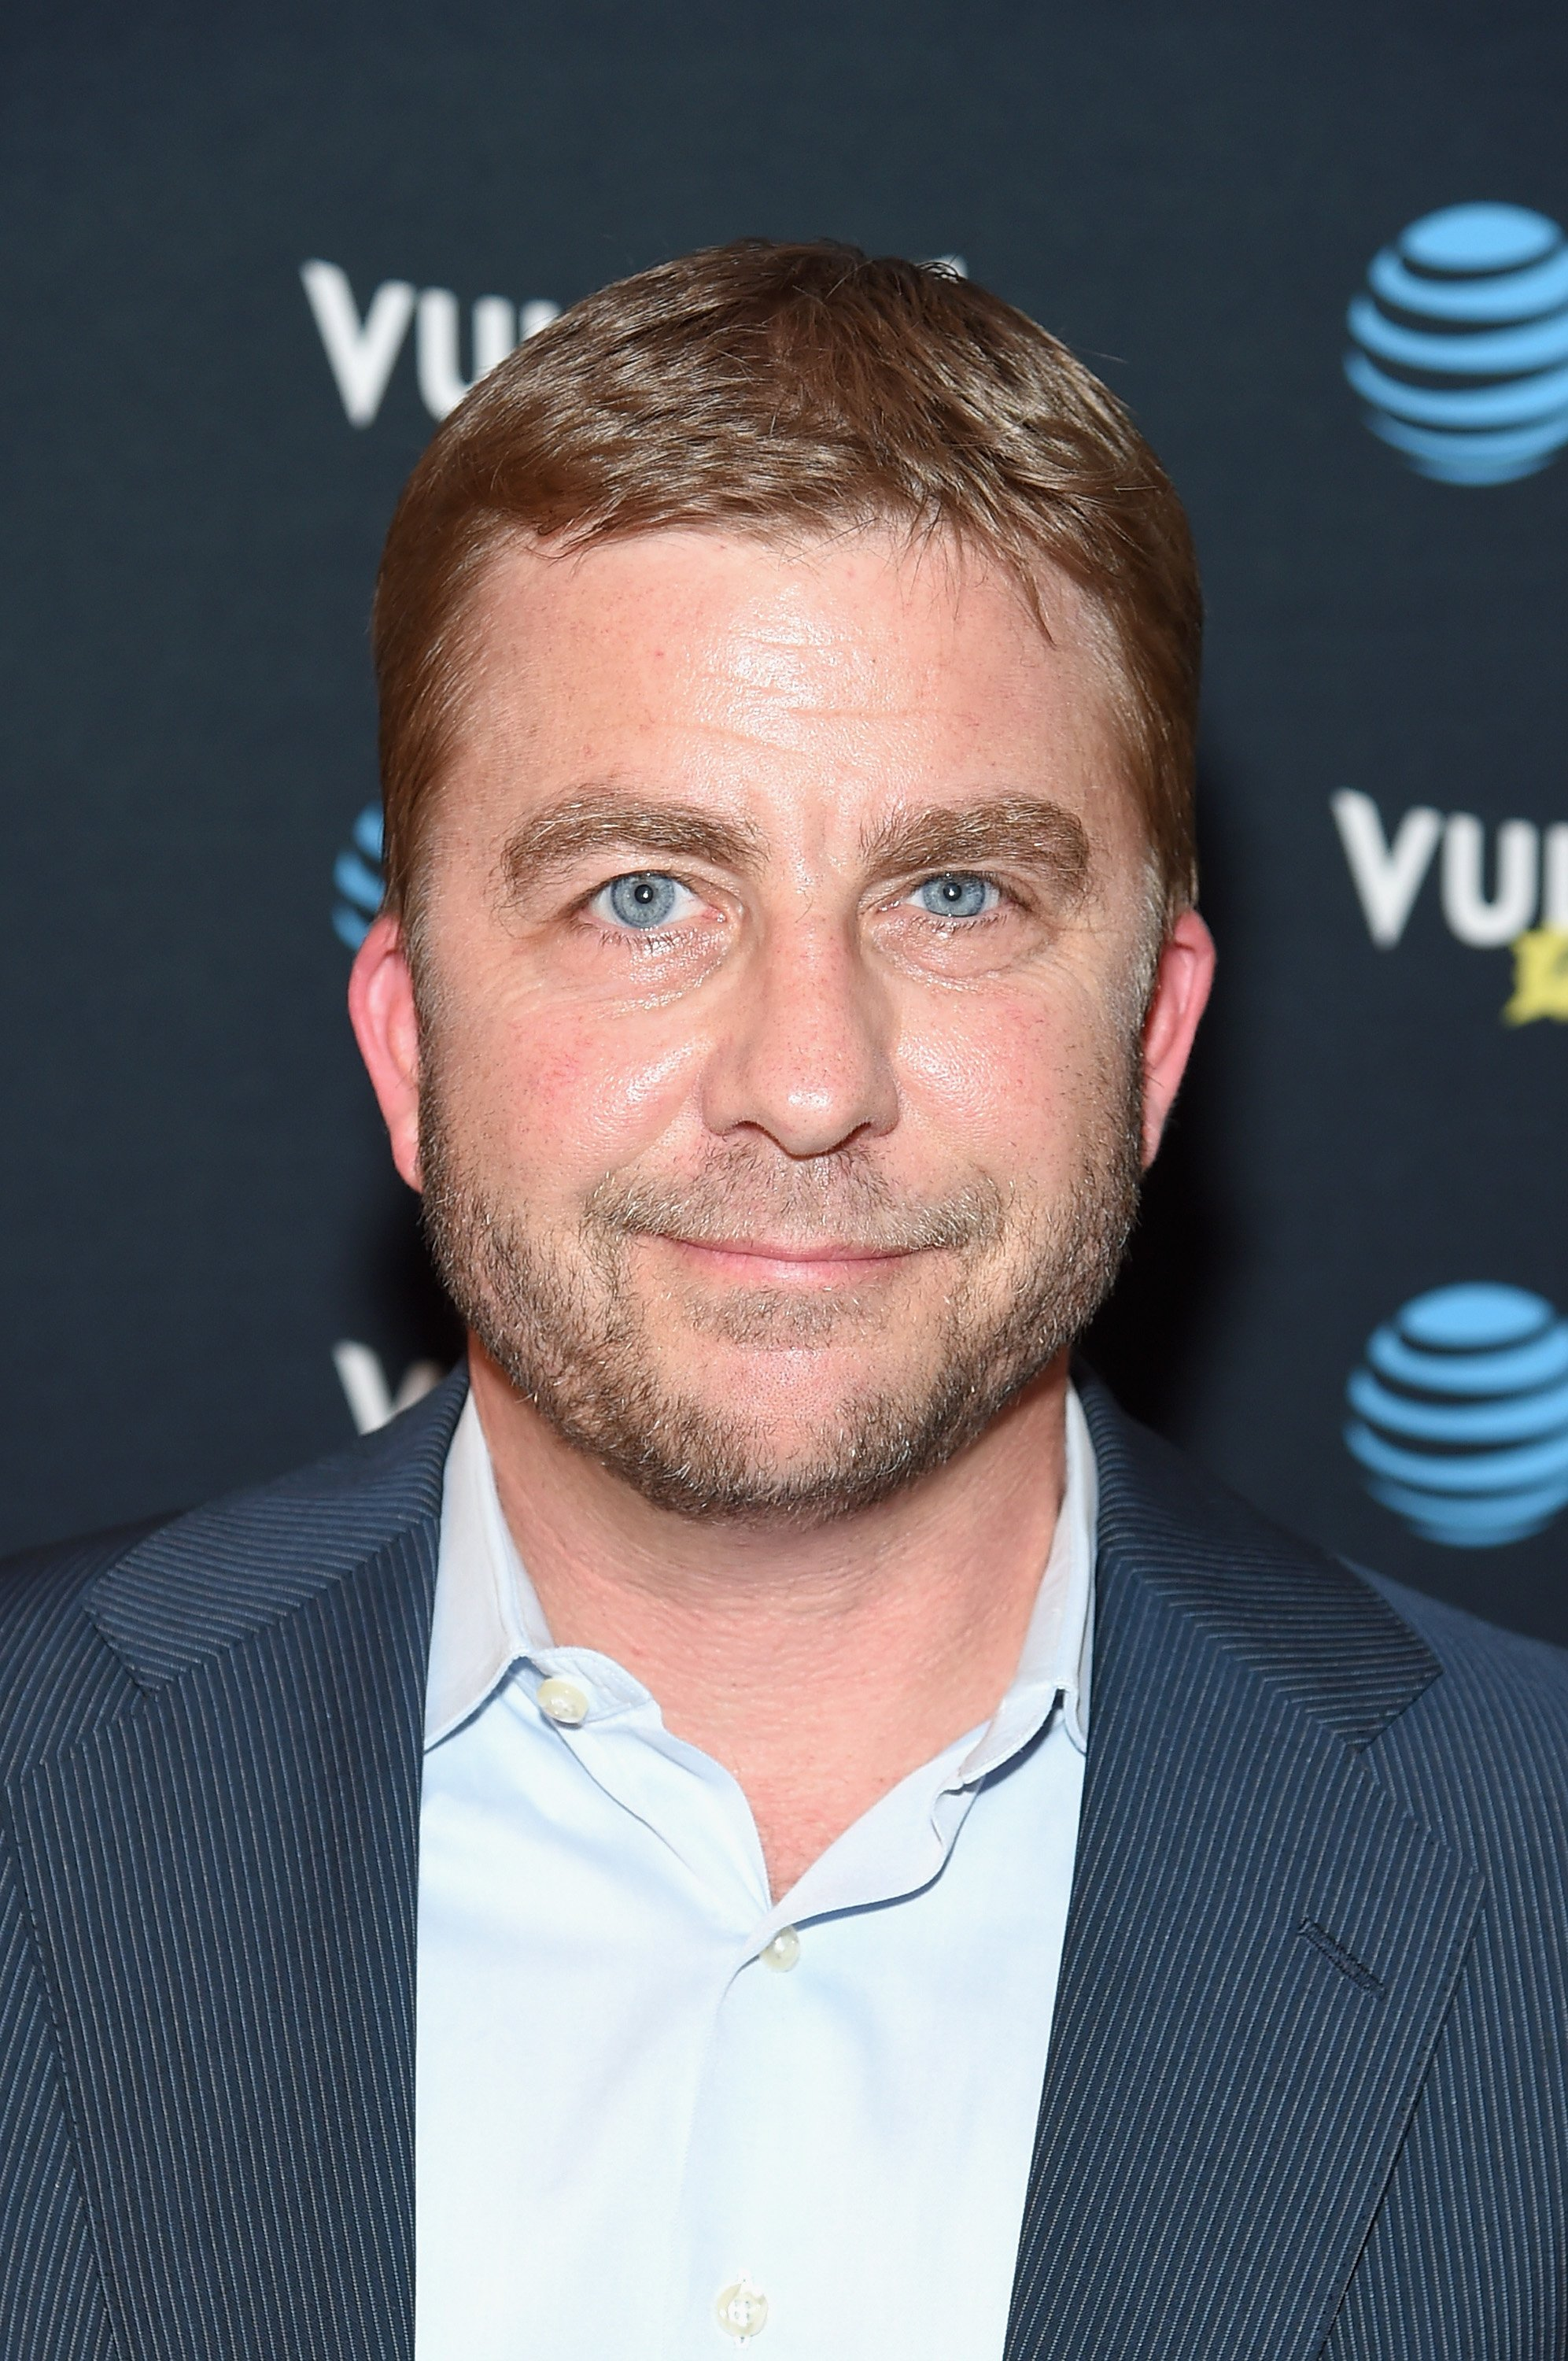 Peter Billingsley attends the Vulture Festival Opening Night Party Presented By AT&T at the Top of The Standard Hotel on May 19, 2017 . | Source: Getty Images